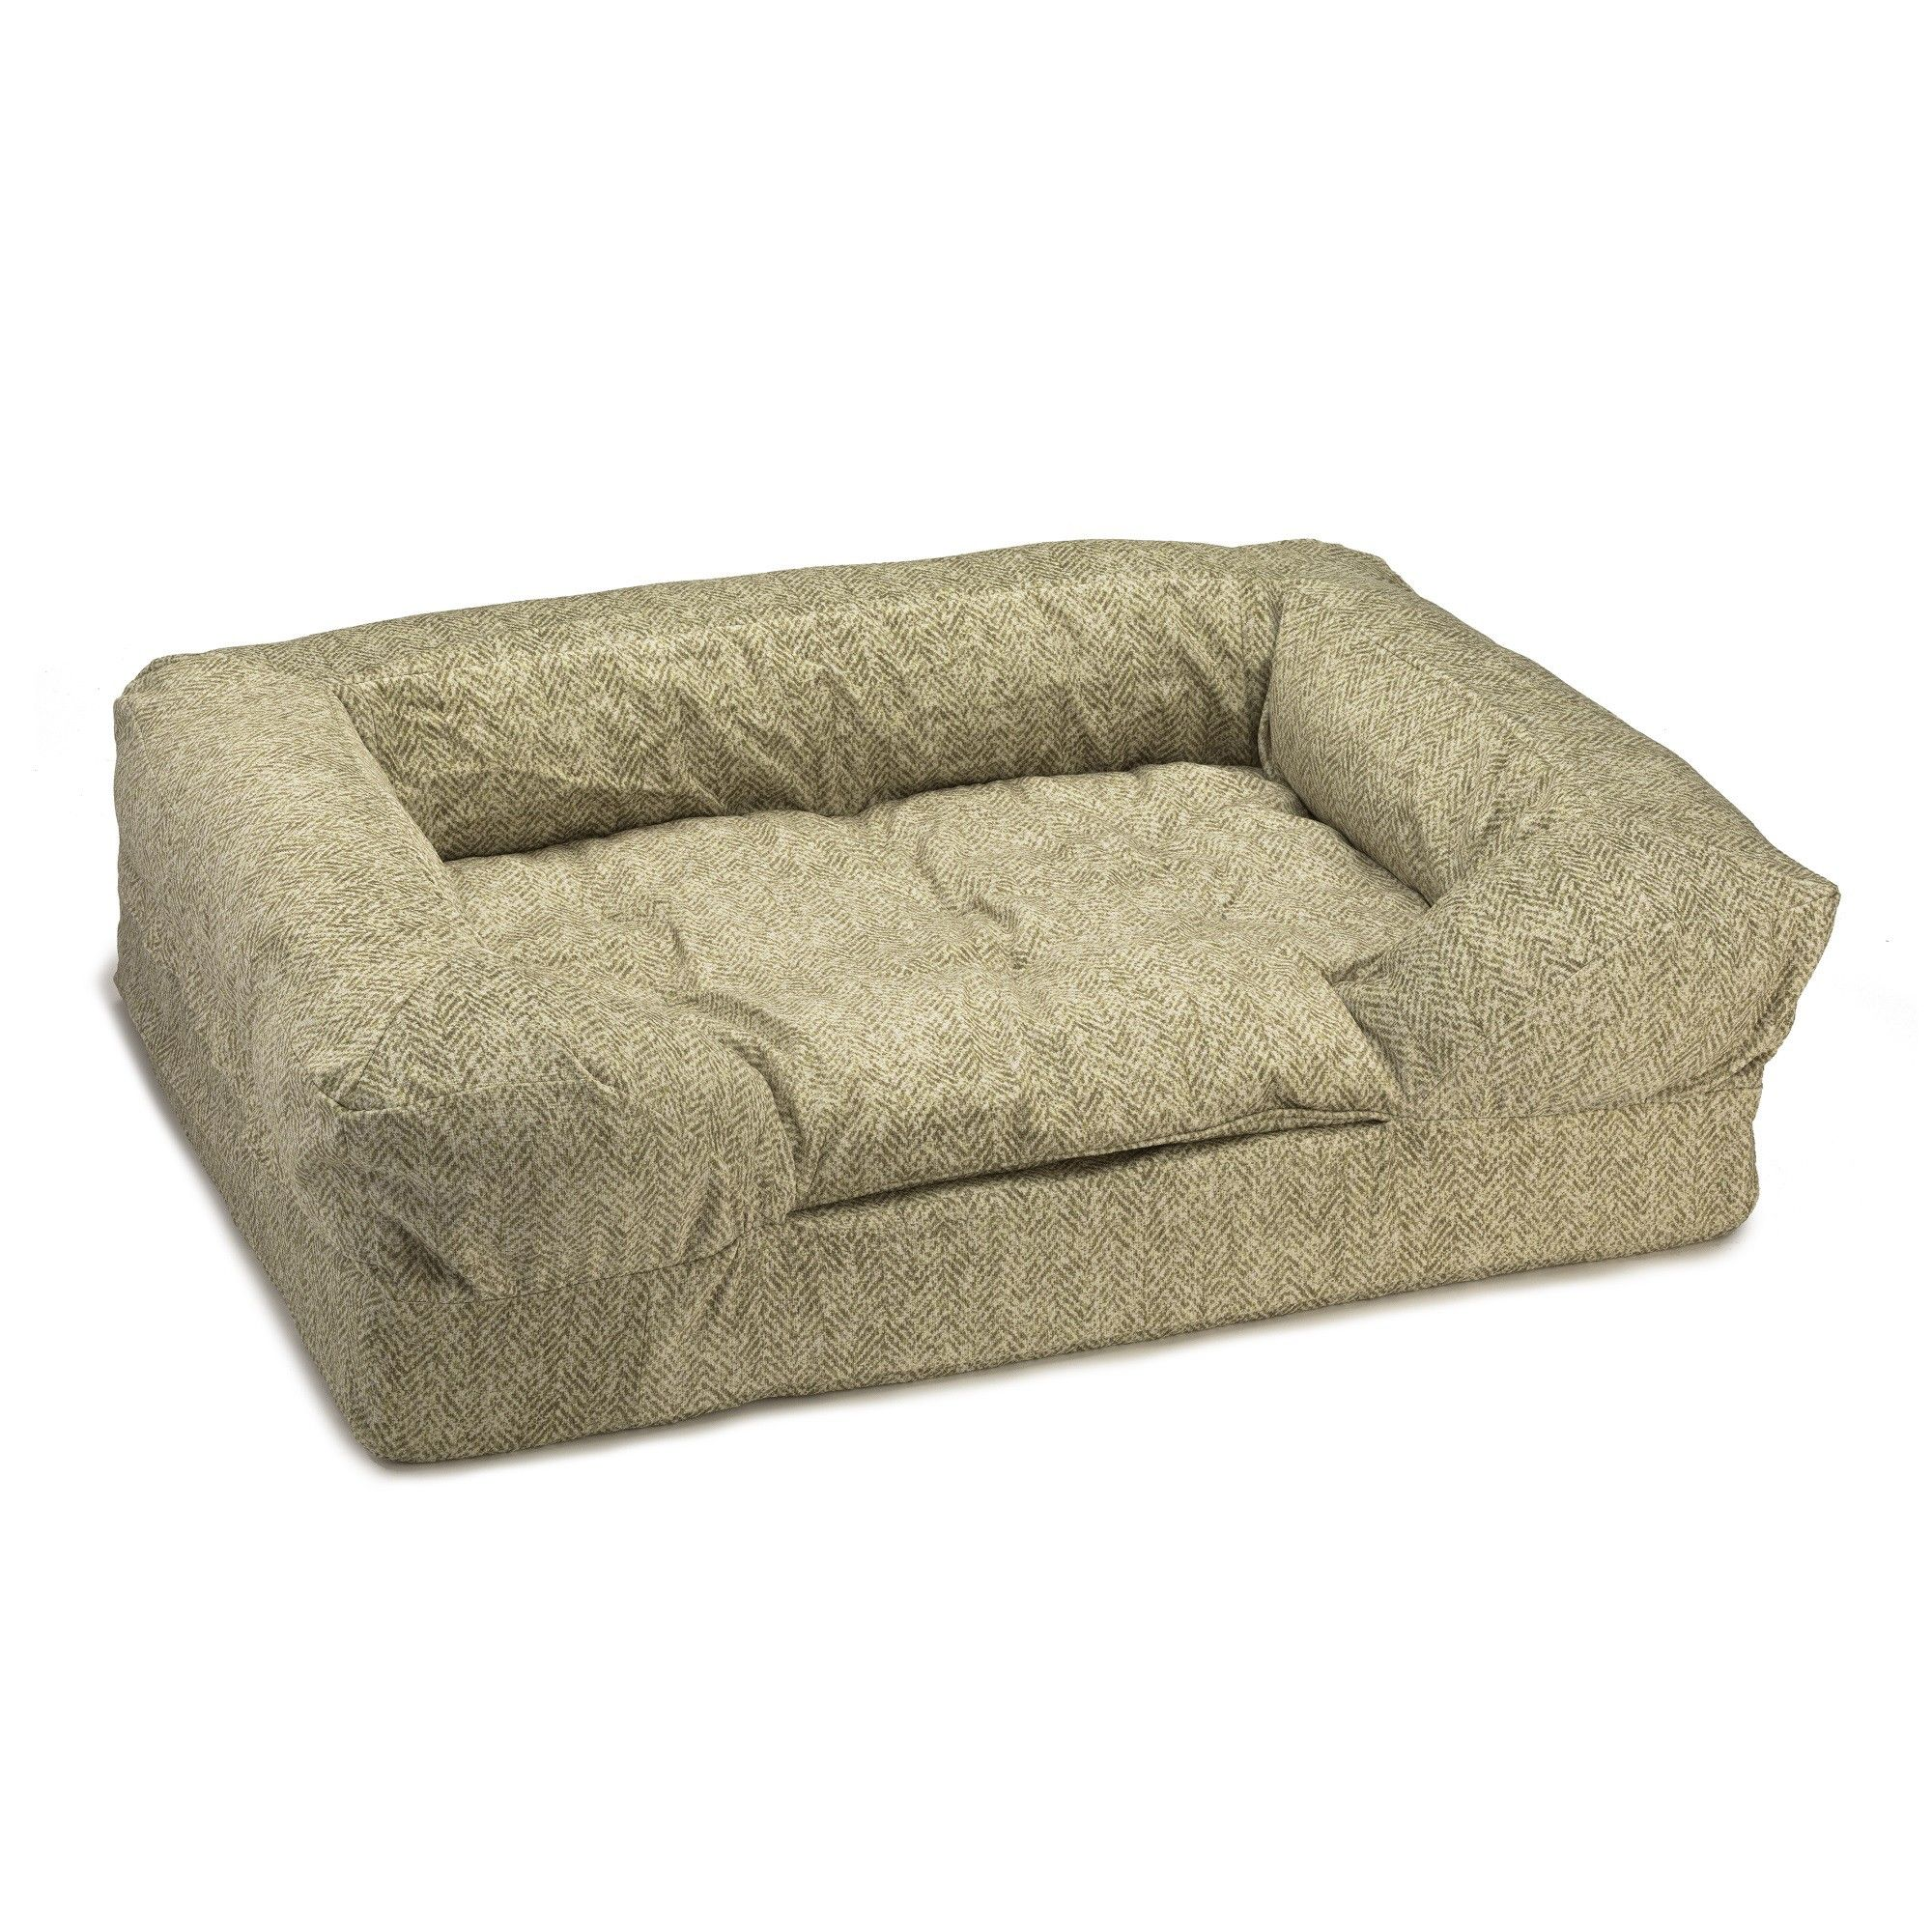 Snoozer 69776 Premium Pet Dog Sofa Medium